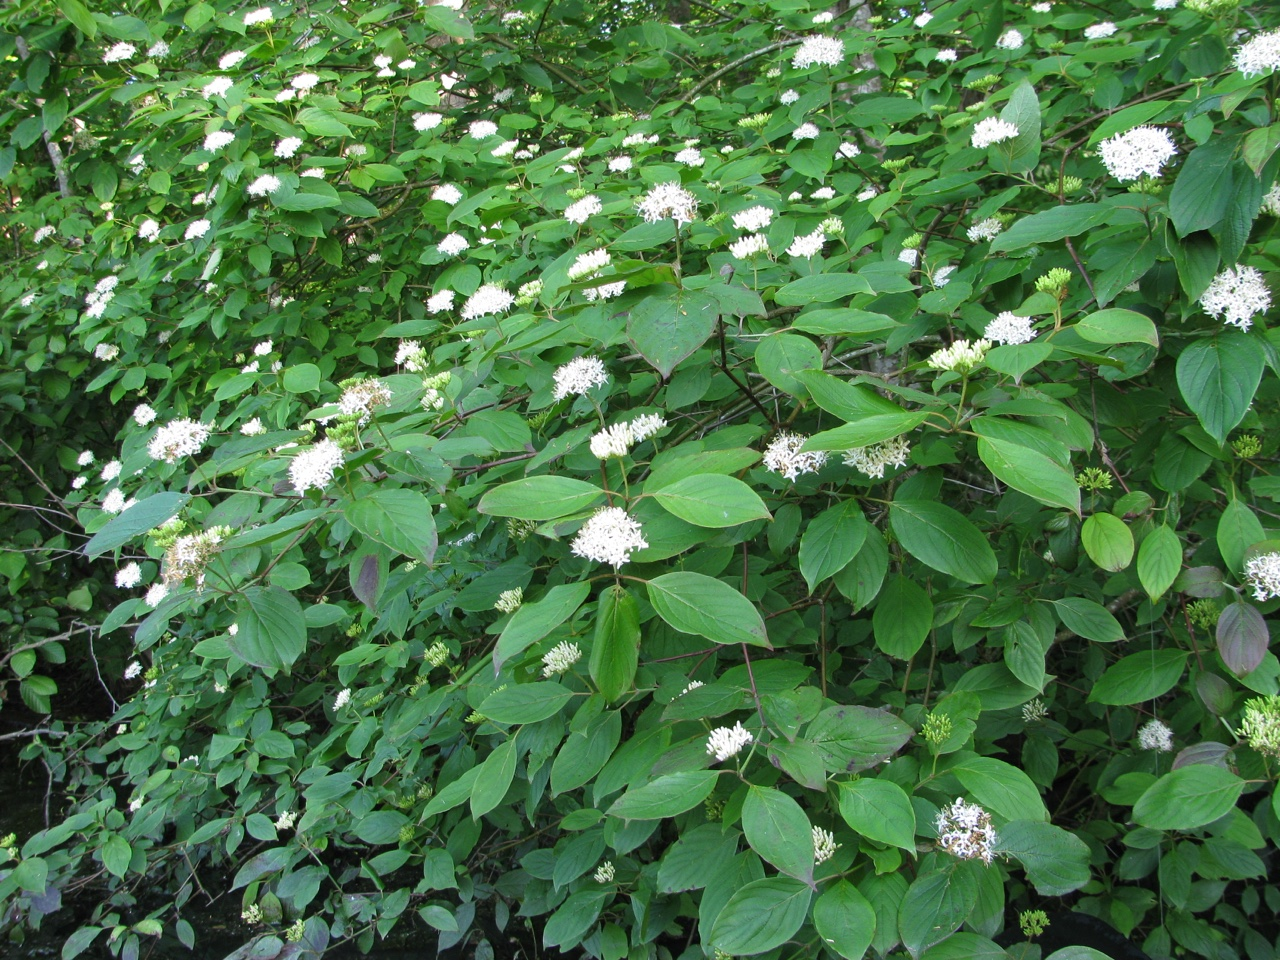 The Scientific Name is Cornus amomum [= Swida amomum]. You will likely hear them called Silky Dogwood. This picture shows the Flowering in early June near water's edge of Cornus amomum [= Swida amomum]